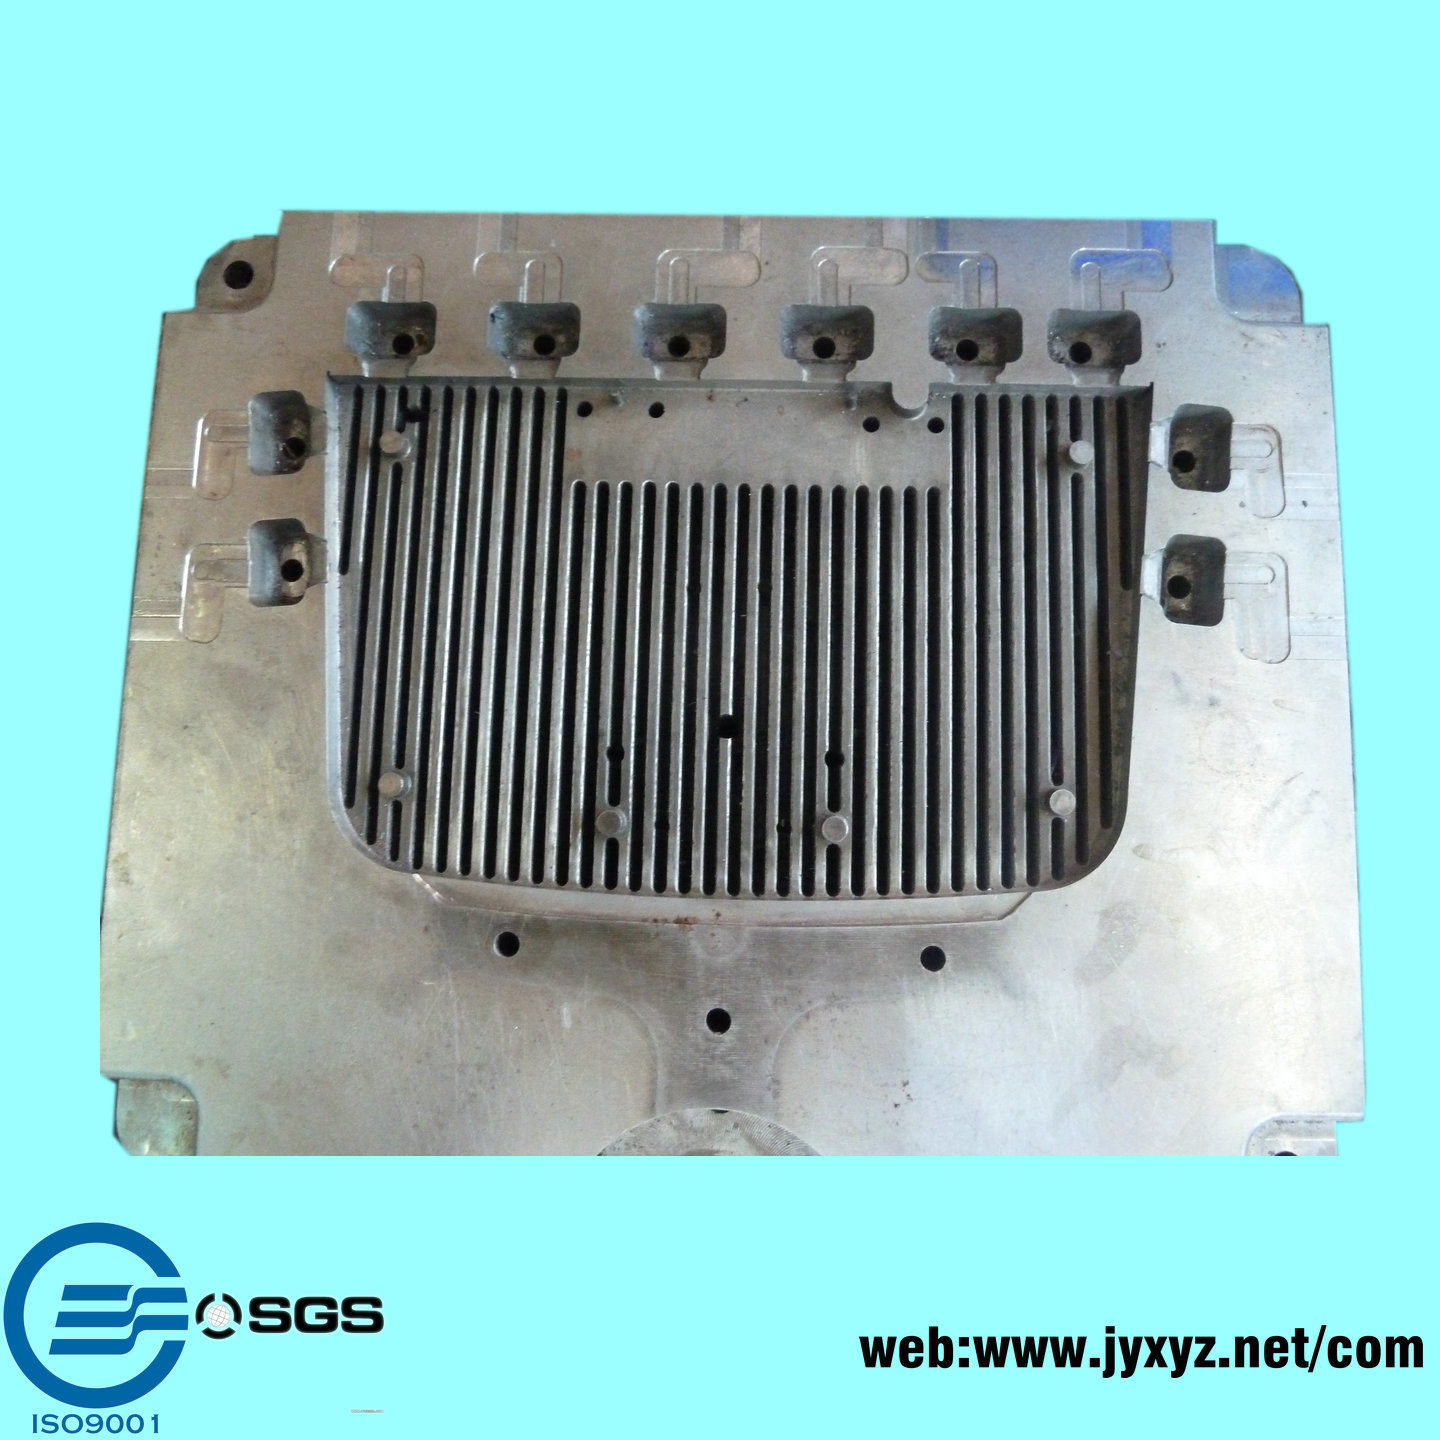 Shenzhen Aluminum Radiator Mould Maker - Mould Products